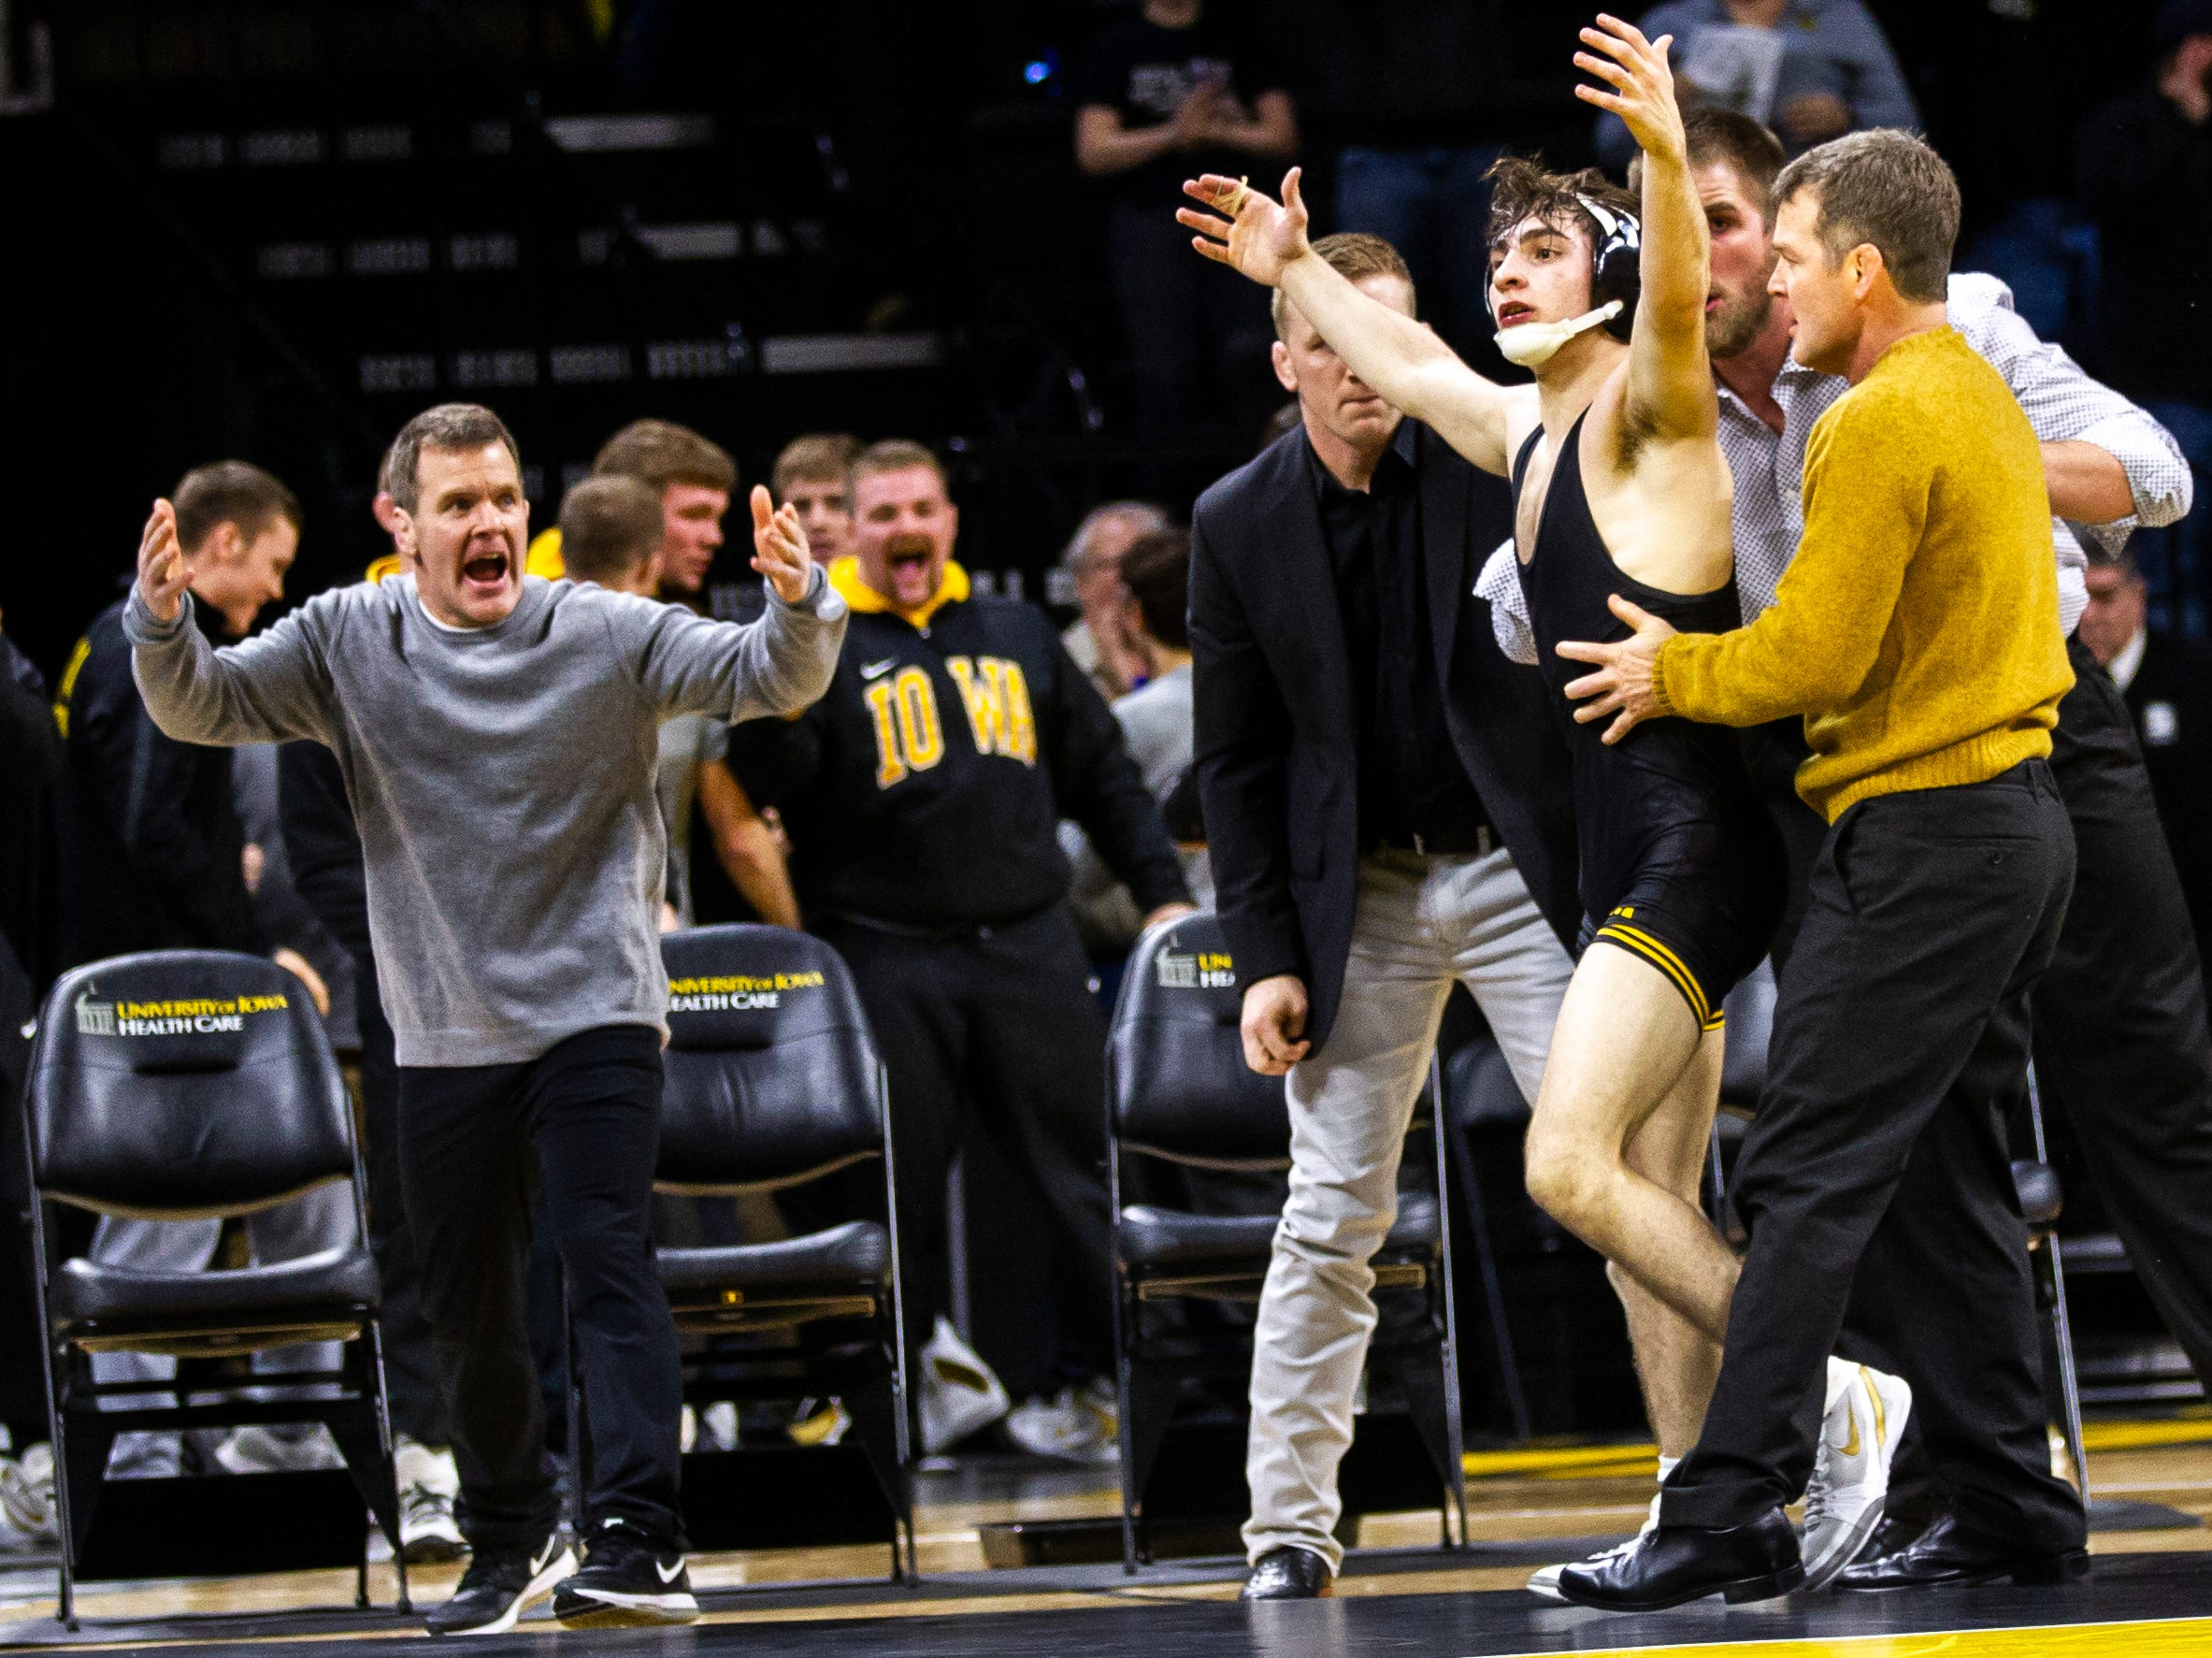 Iowa's Austin DeSanto celebrates after scoring a decision over Rutgers' Nick Suriano at 133 during a NCAA Big Ten Conference wrestling dual on Friday, Jan. 18, 2019, at Carver-Hawkeye Arena in Iowa City, Iowa.